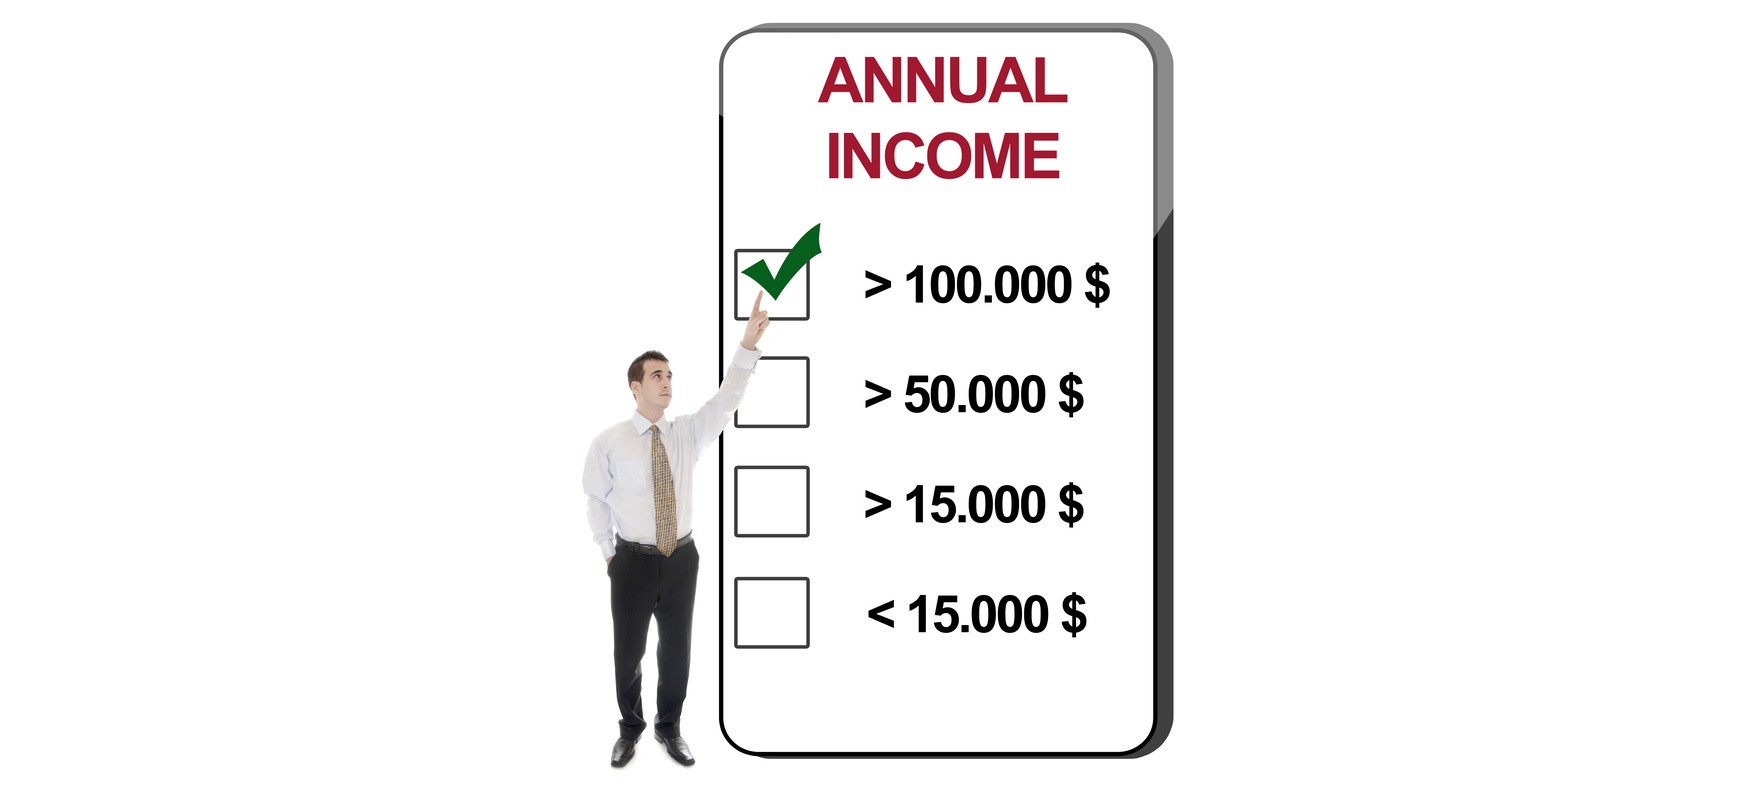 How To Create A $100,000 Annual Income In Six Months Or Less